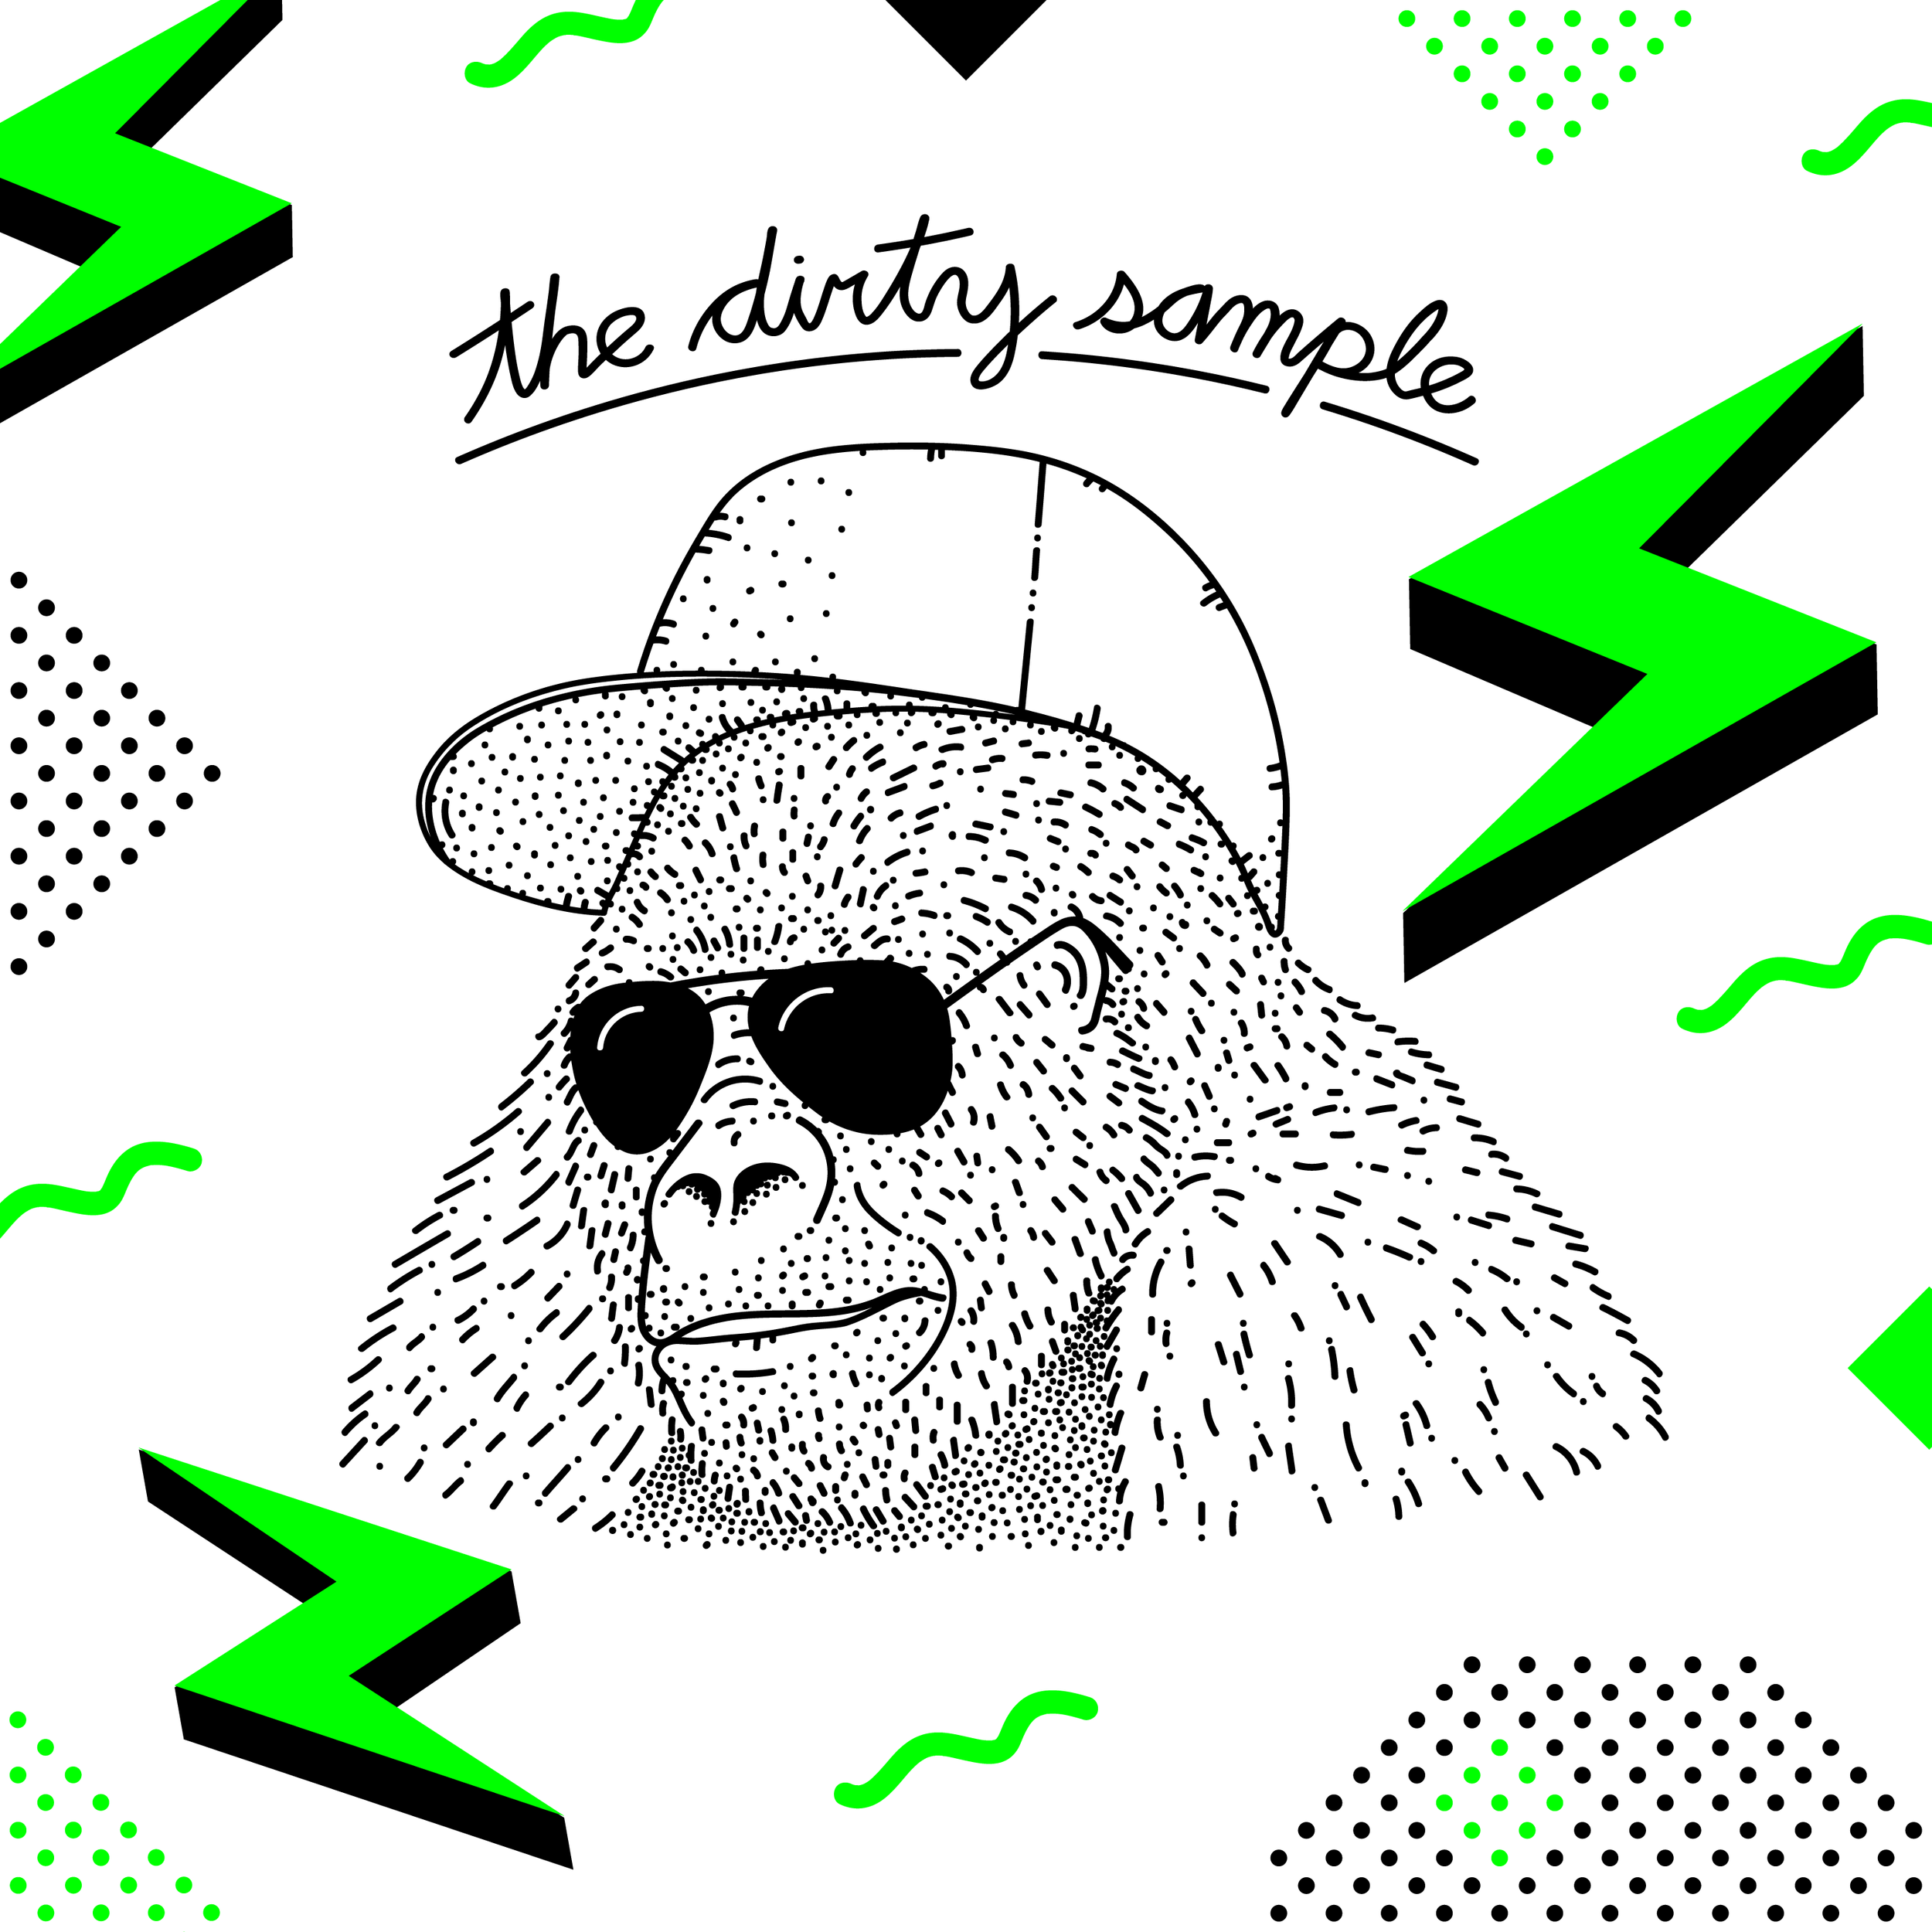 Episode 13 - The Dirty Sample - phonographique / Han'solo Records